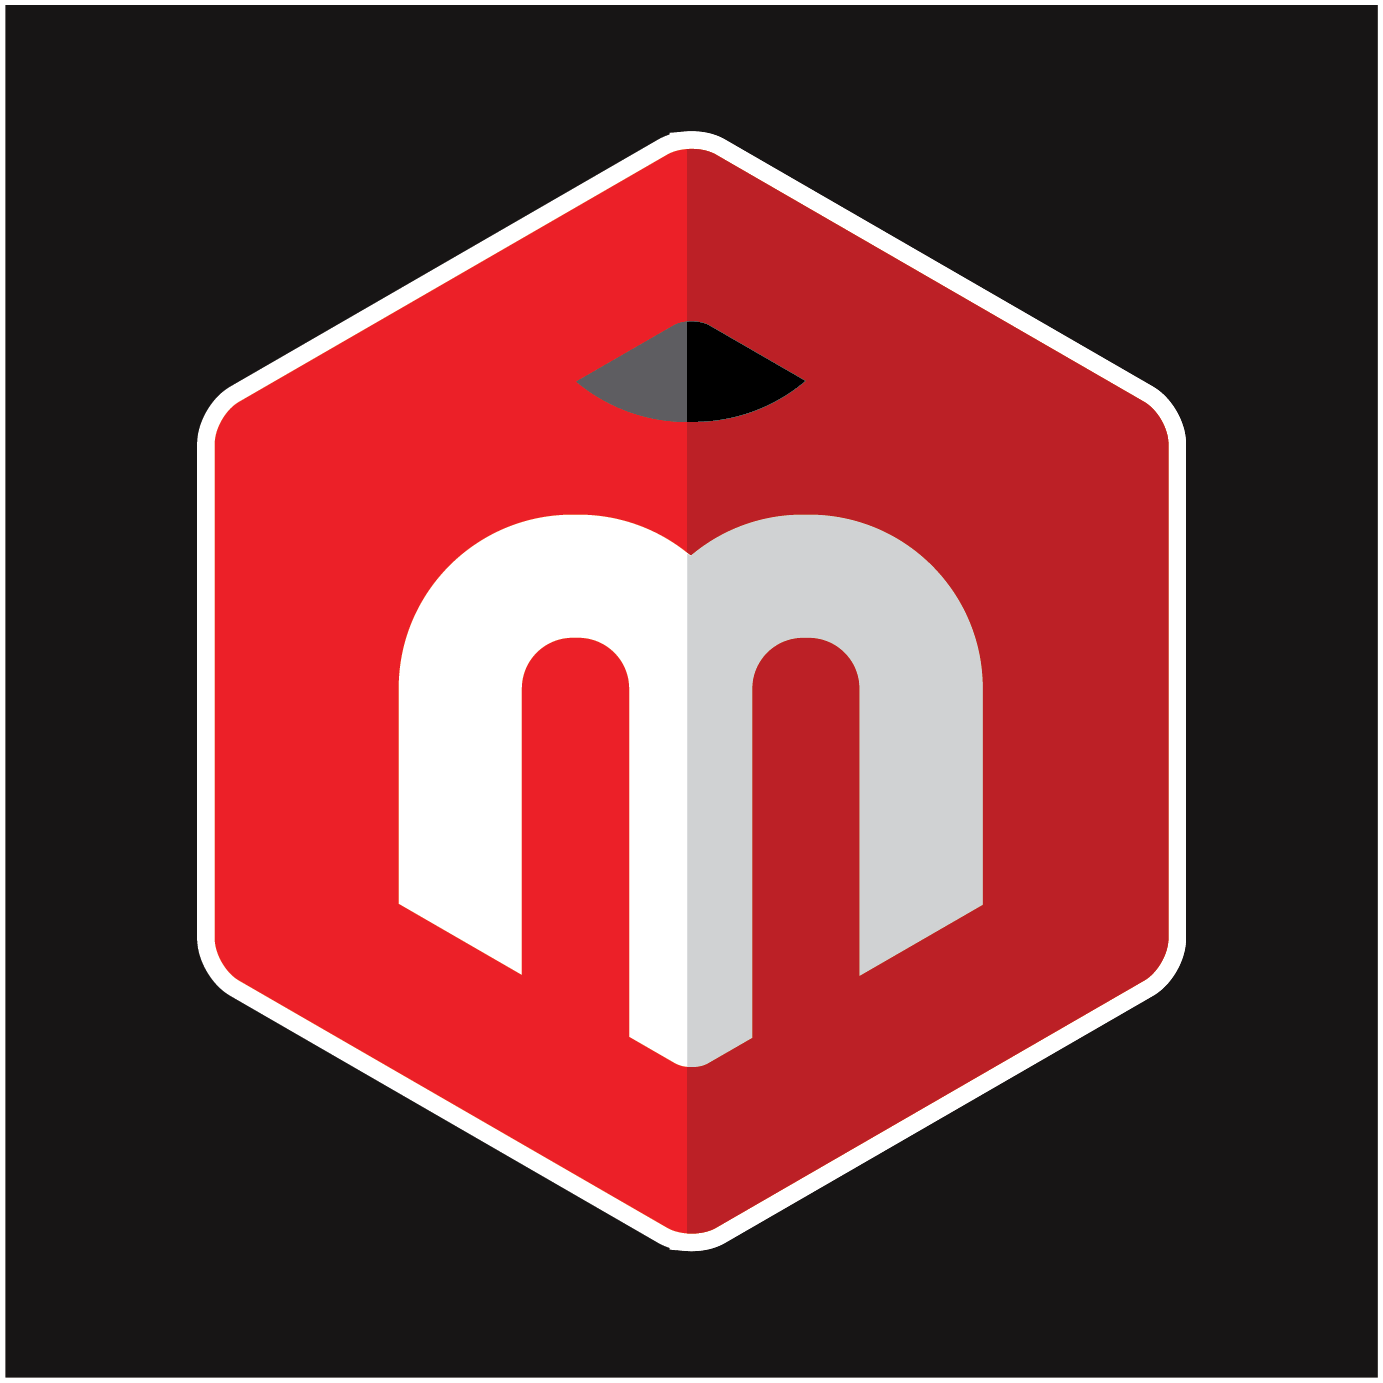 Company logo of Murie Design Group